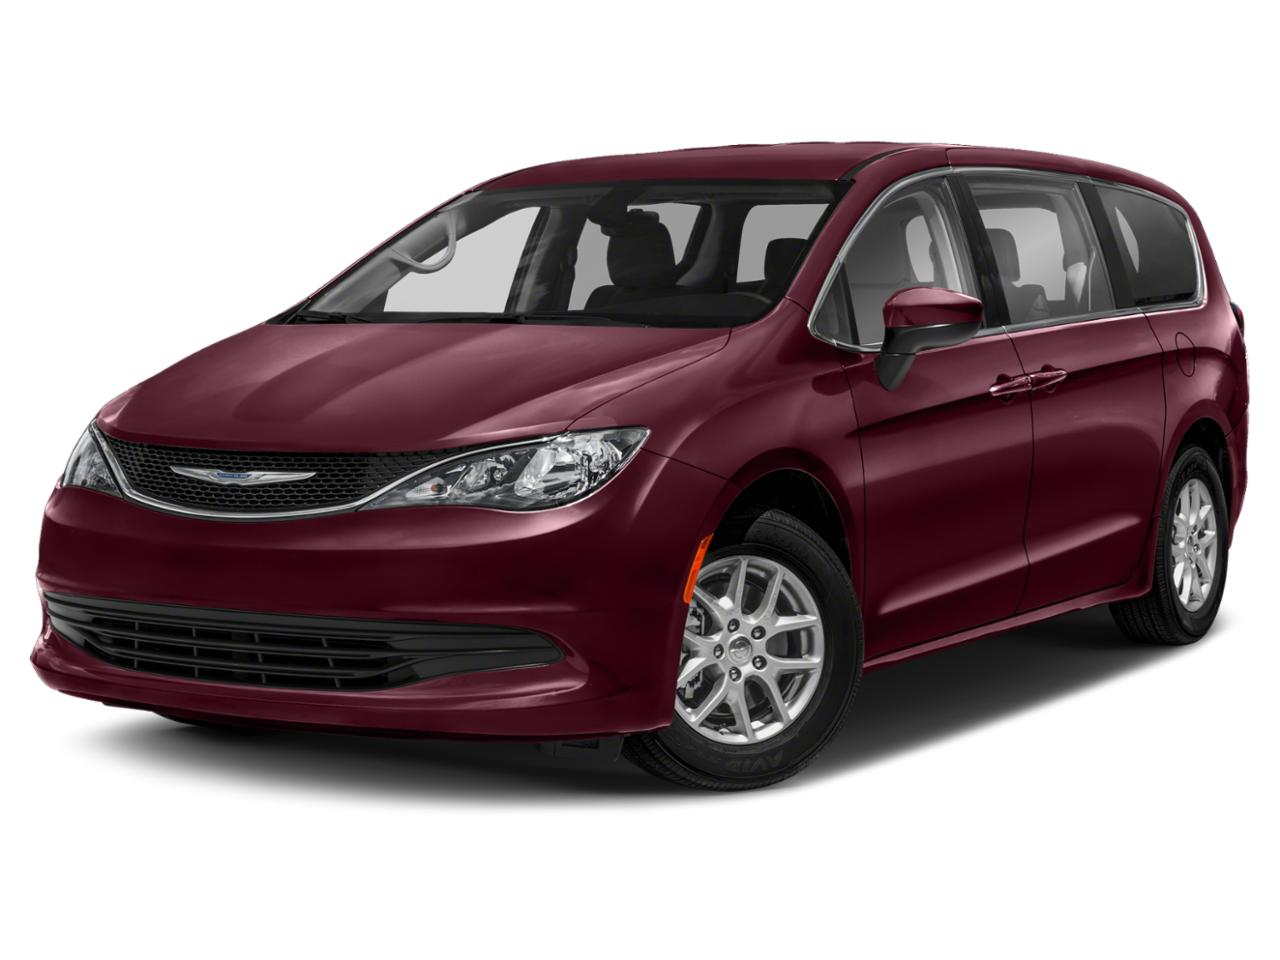 2018 Chrysler Pacifica Vehicle Photo in Hartford, KY 42347